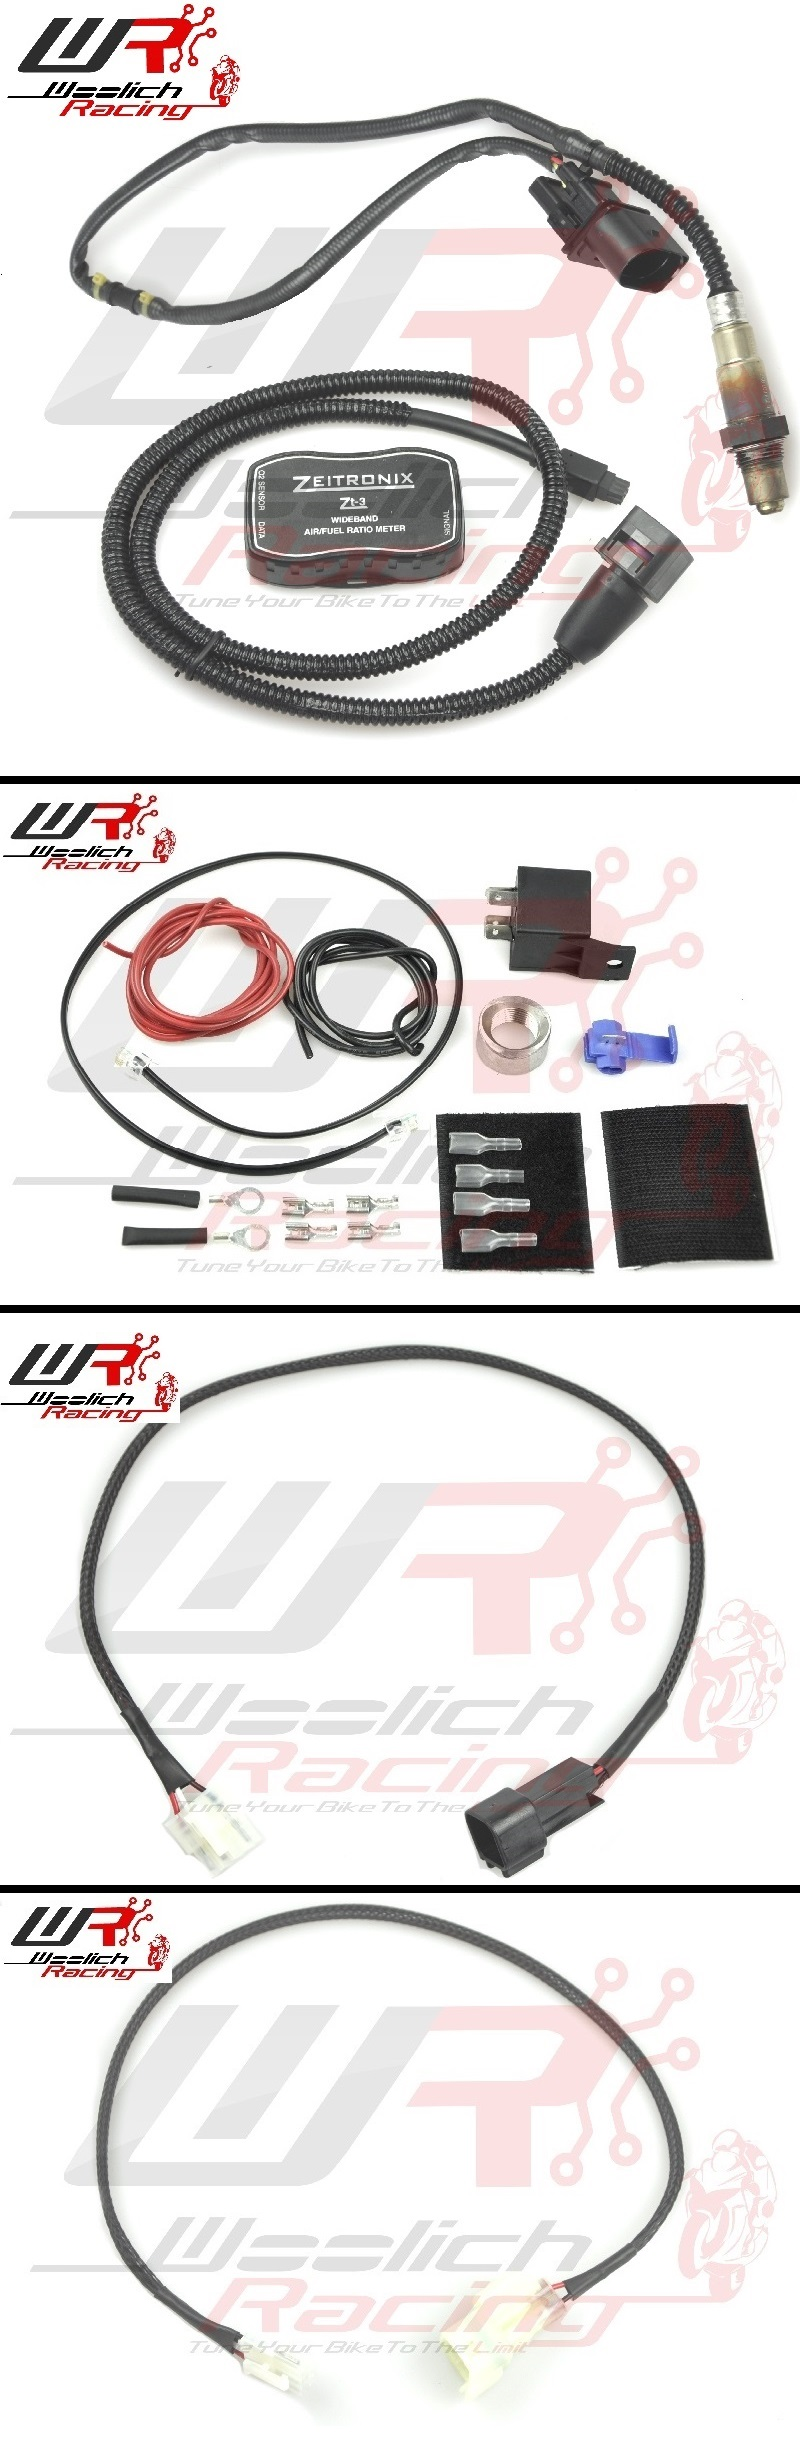 2009-2011 Kawasaki ER-6n Log Box (Denso) v3 + Zeitronix ZT-3 Wideband O2 Package